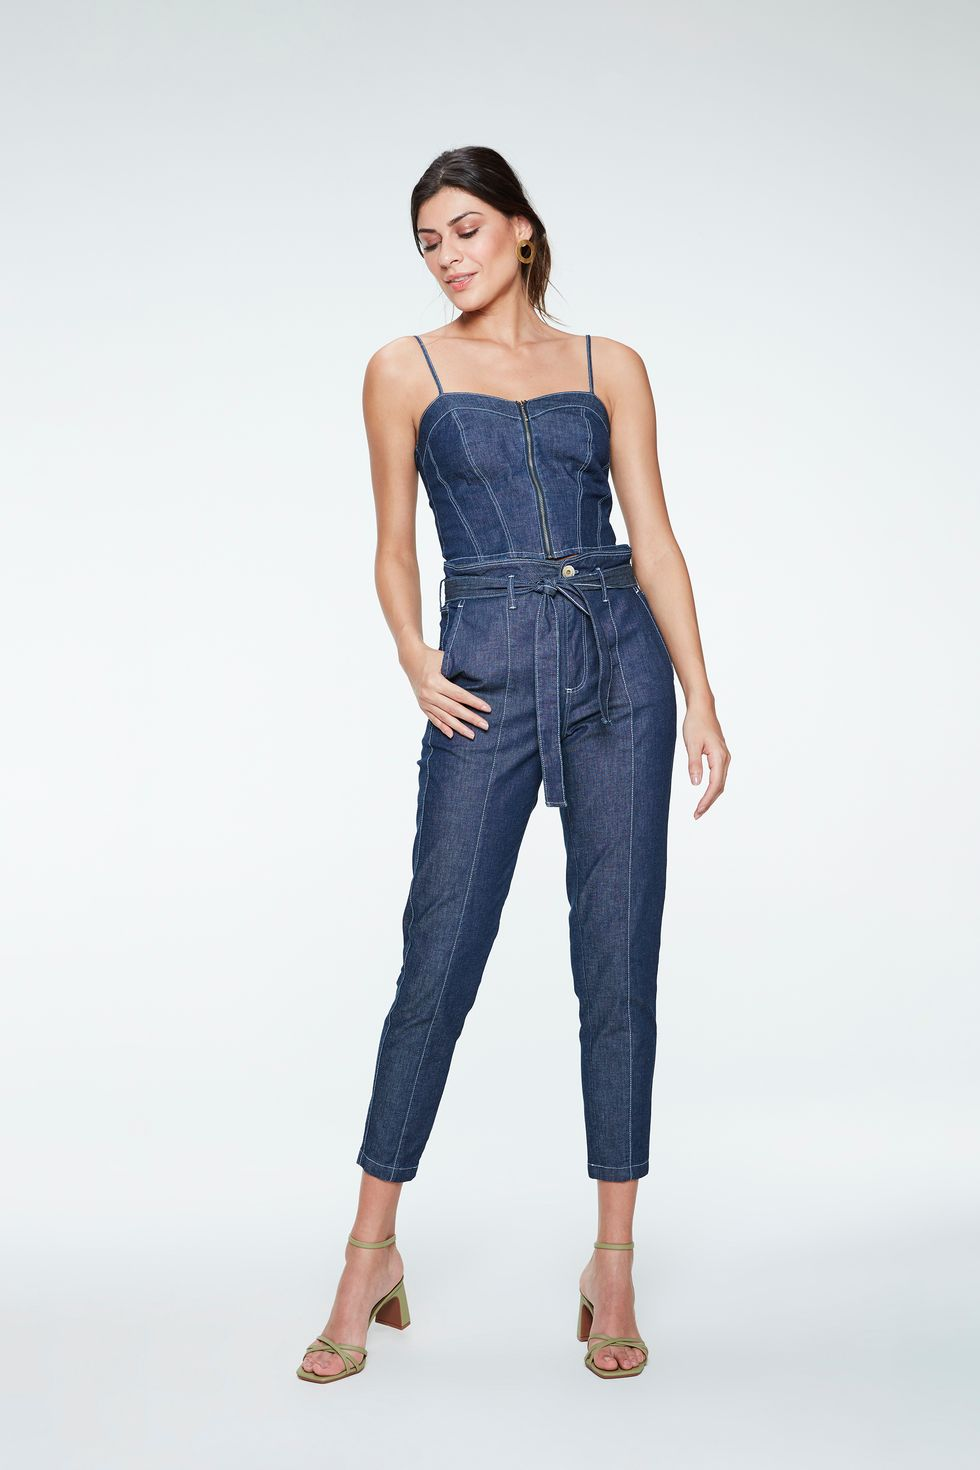 Calca-Jeans-Clochard-Cropped-com-Recorte-Frente--